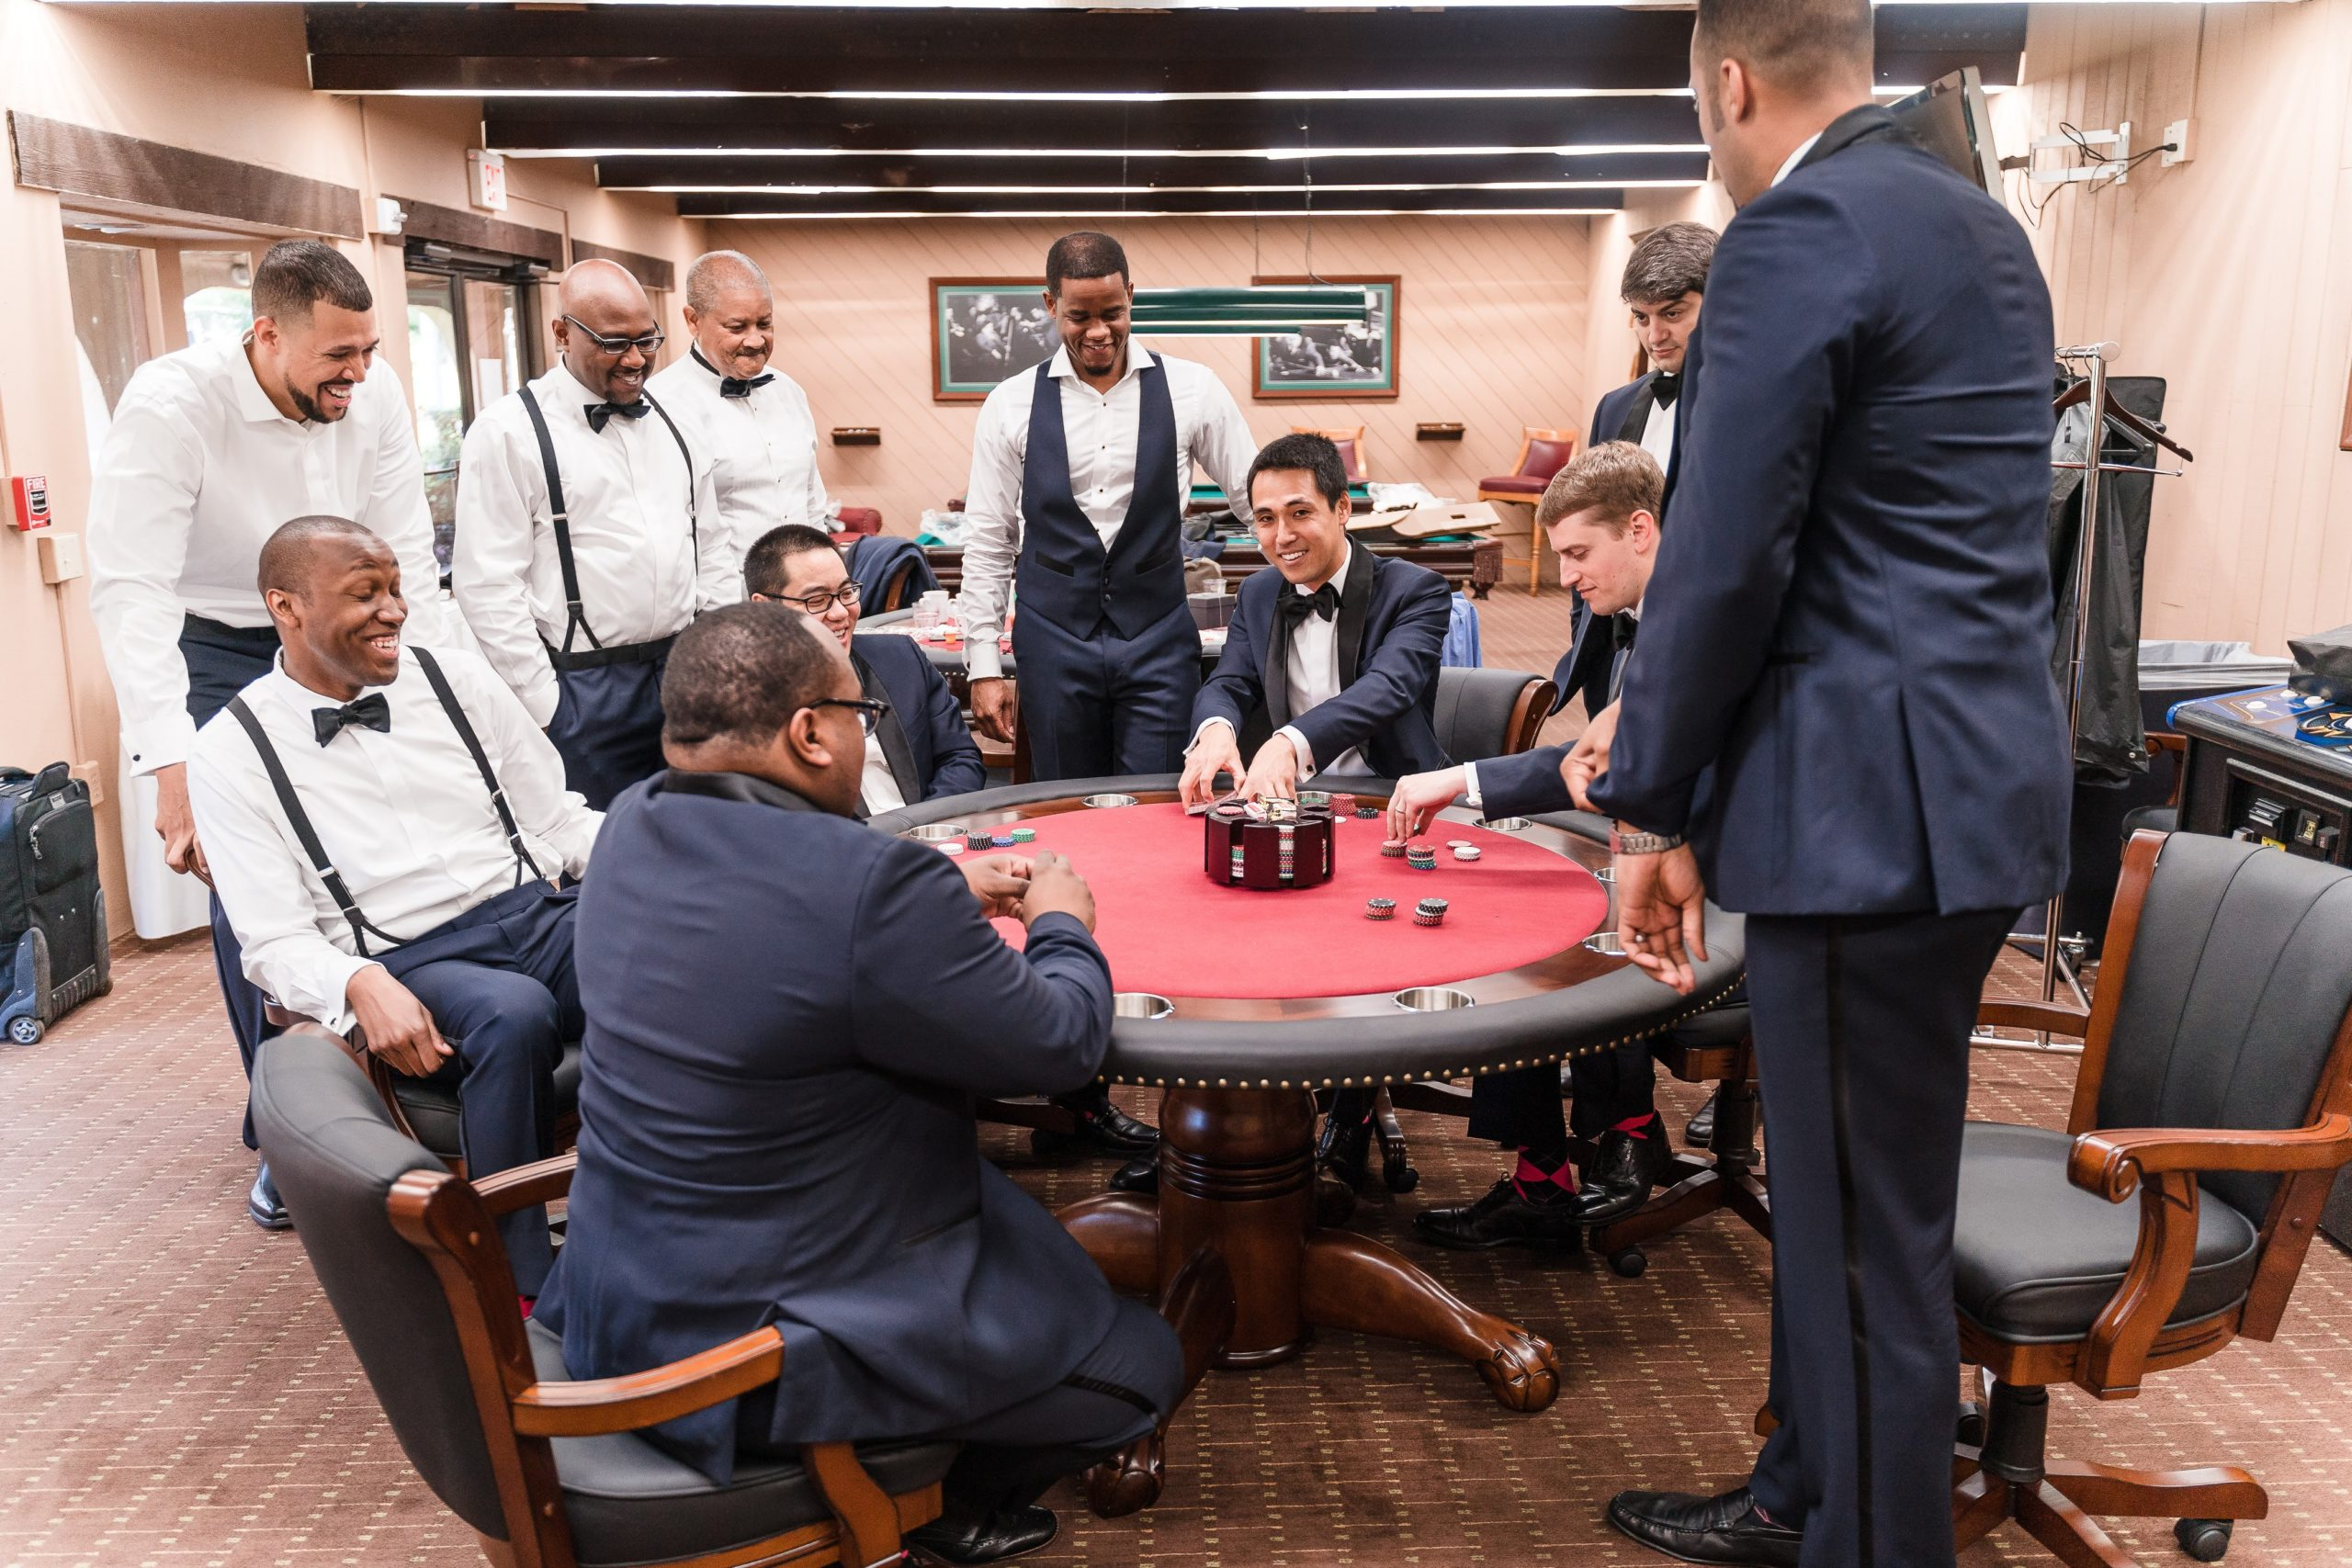 Groomsmen sitting around poker table playing poker